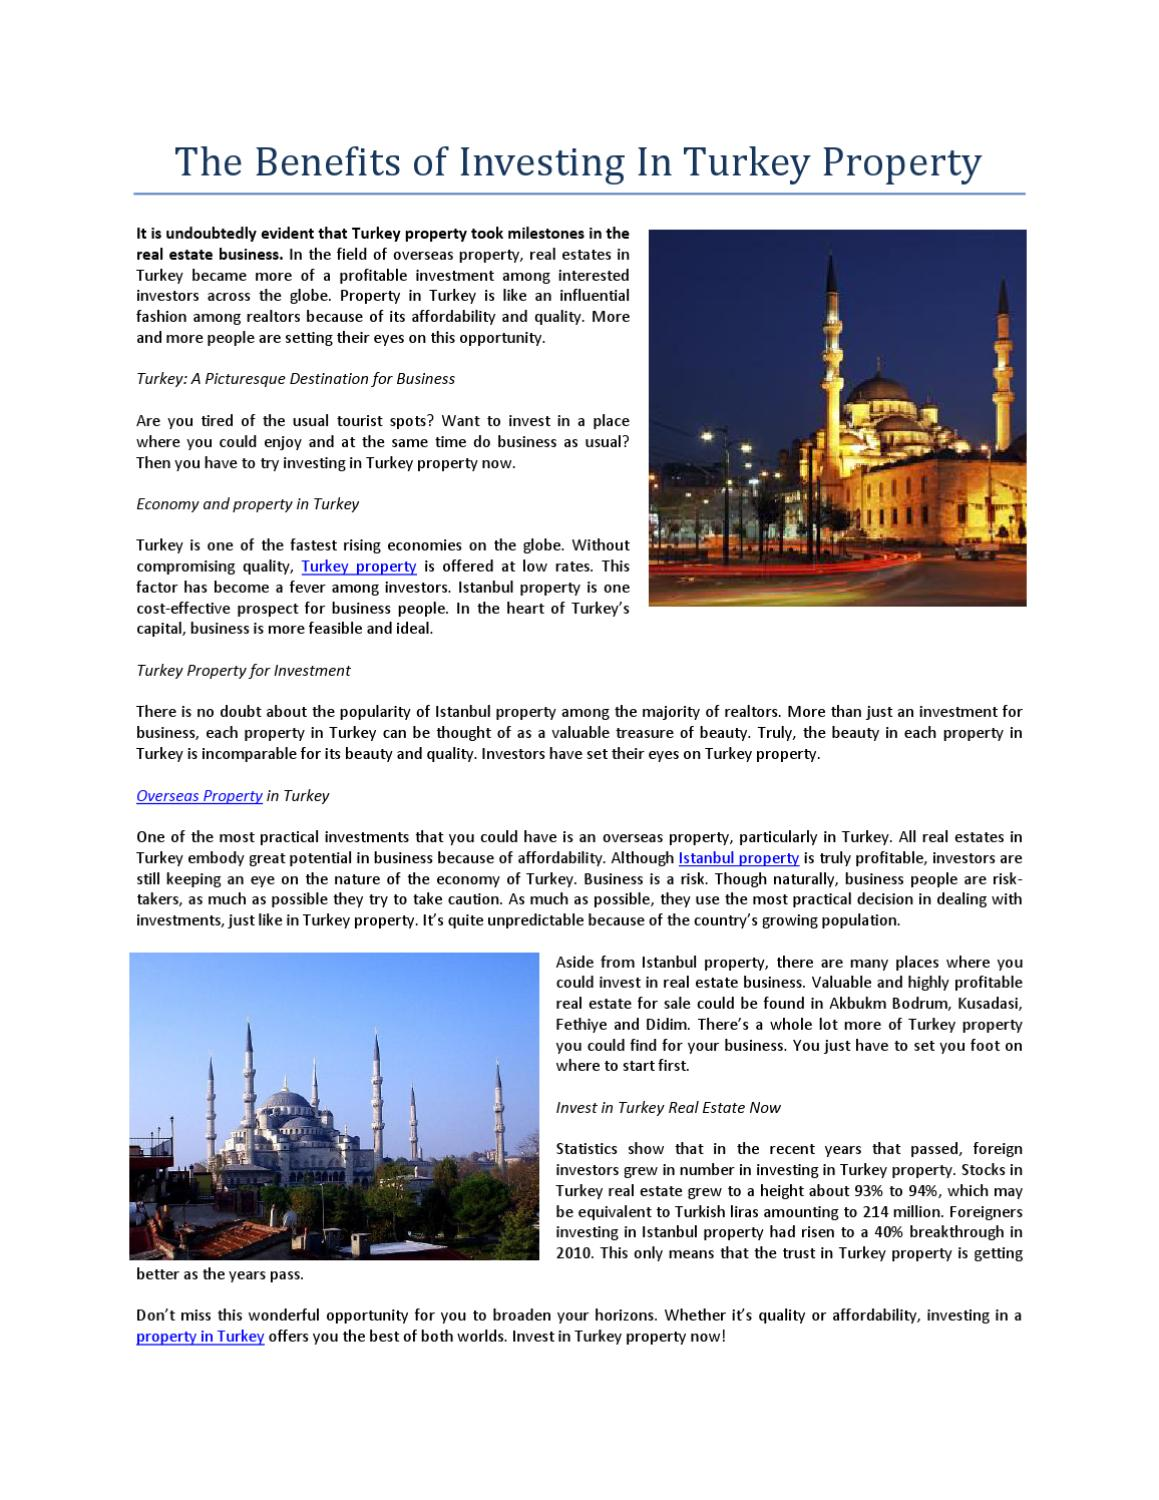 The Benefits Of Investing In Turkey Property By Charlene Mcgee Issuu